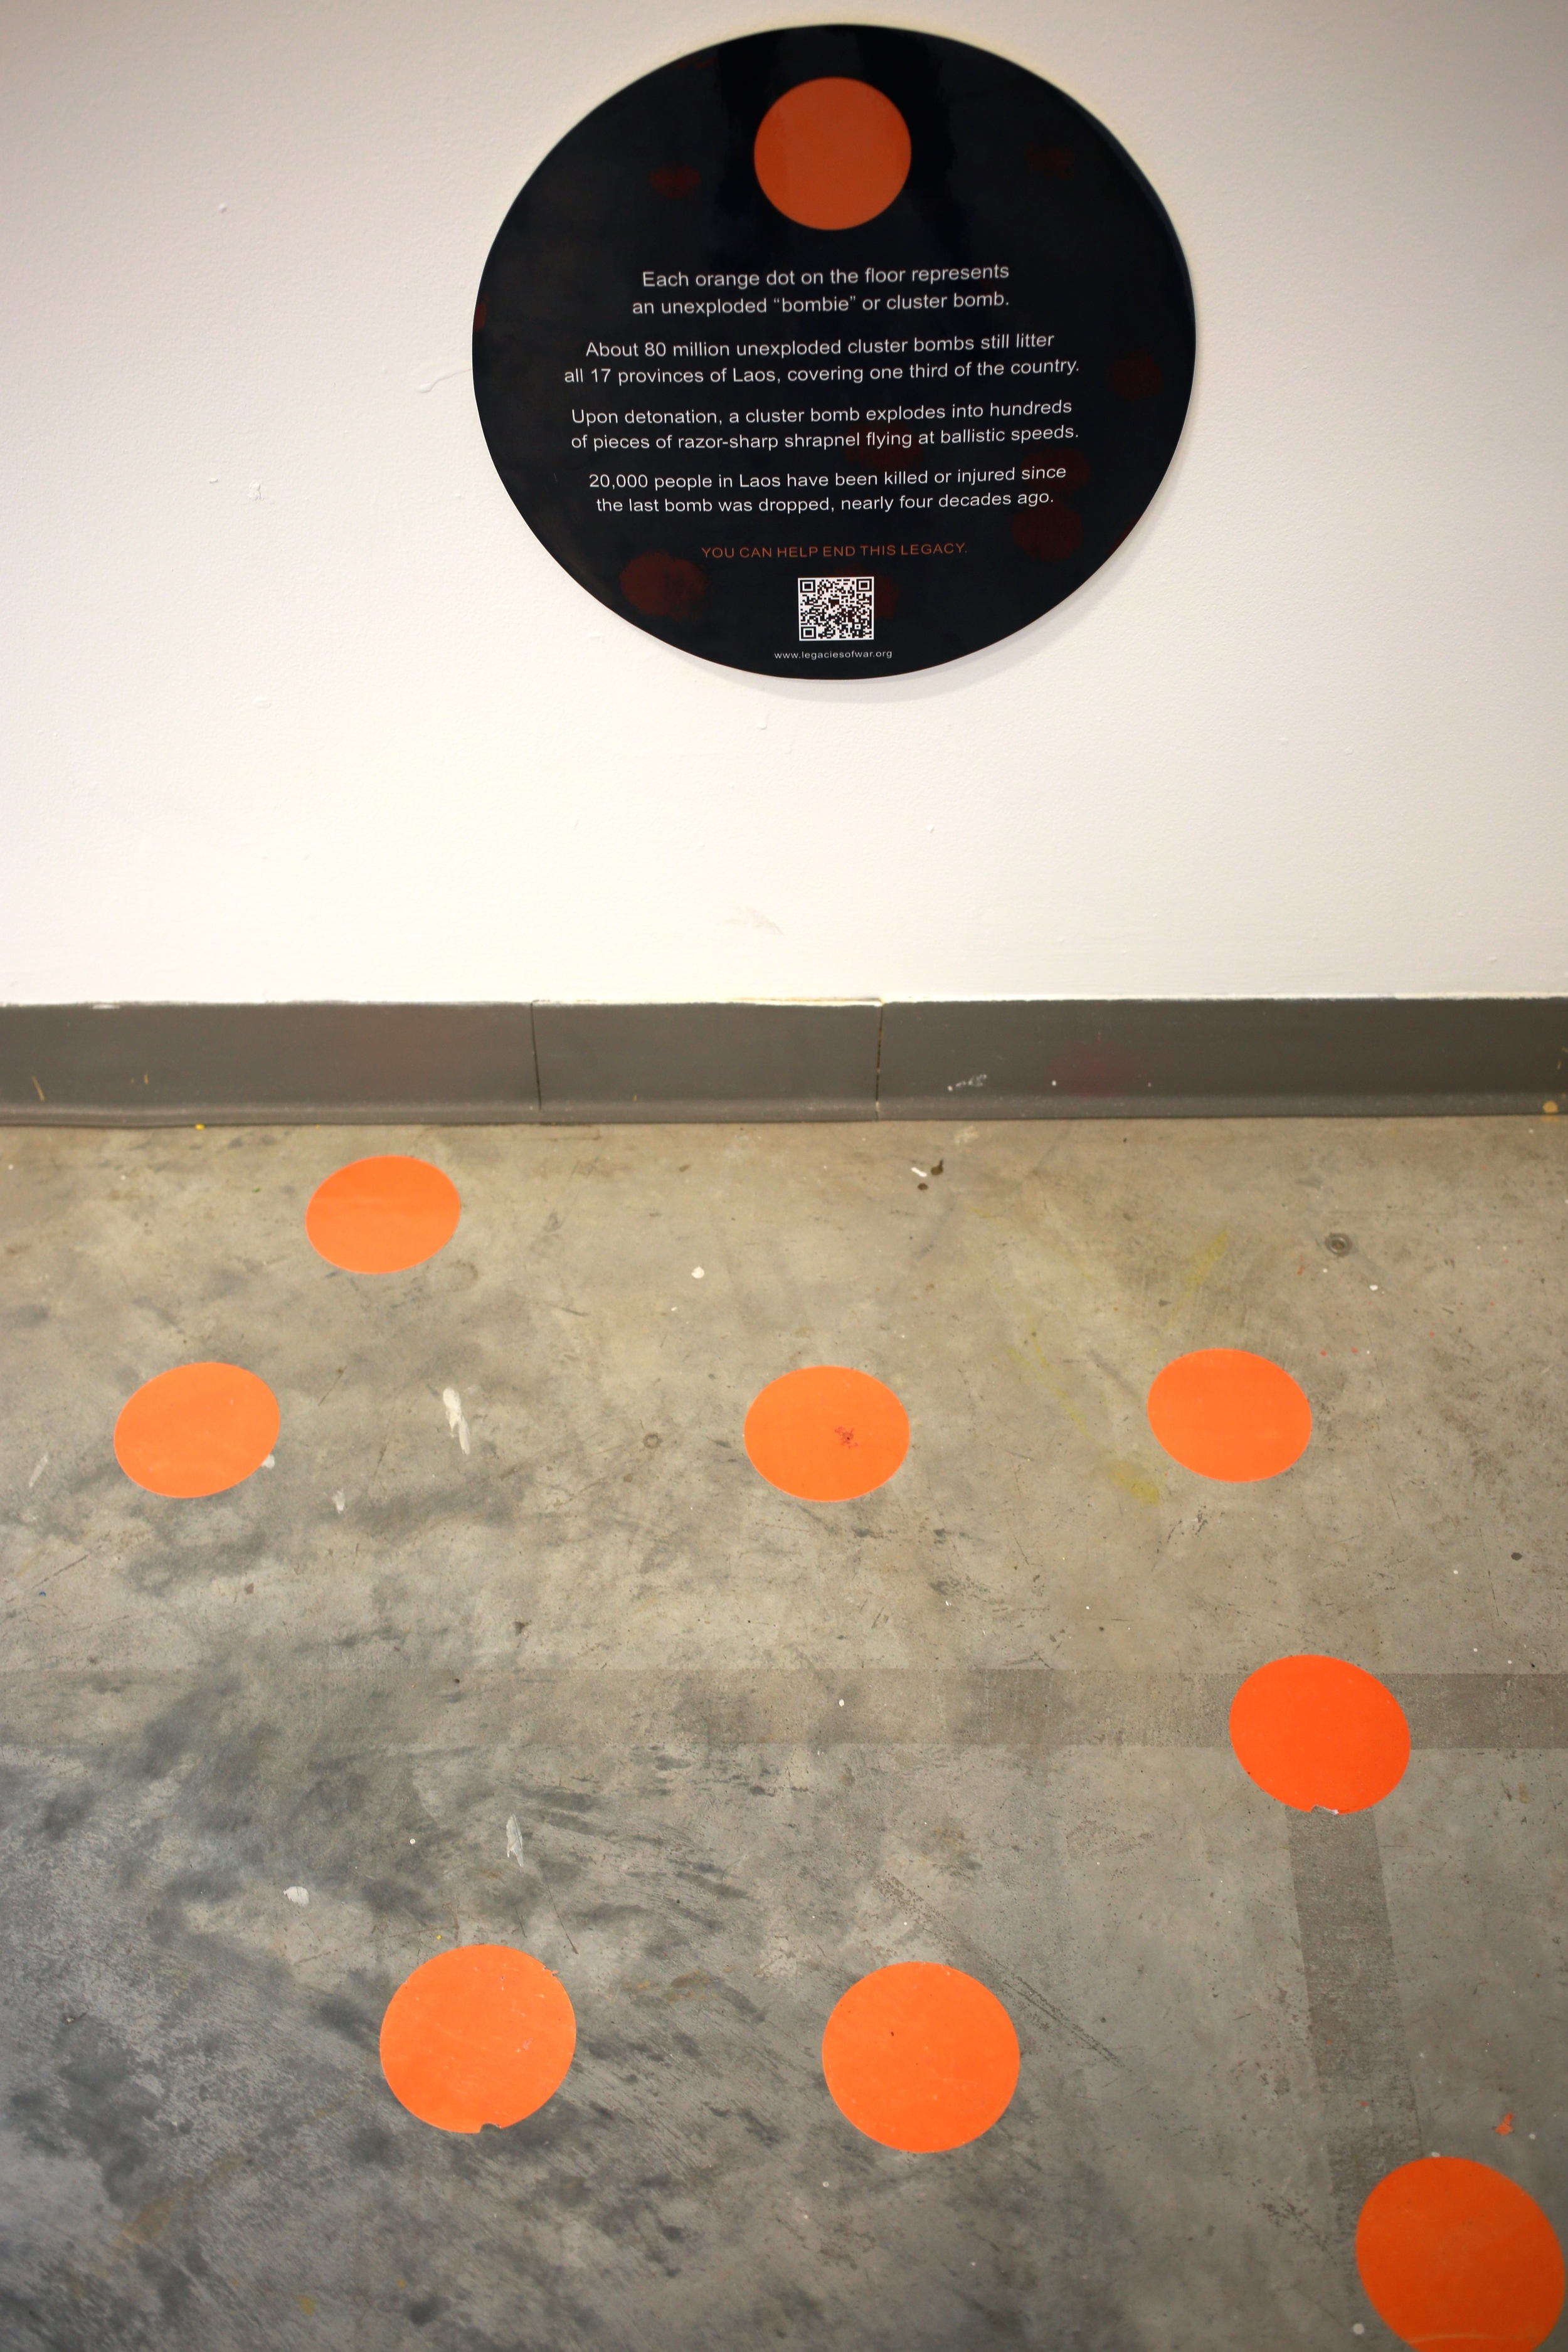 Floor dots representing the unexploded bombs still remaining in Laos, by Legacies of War